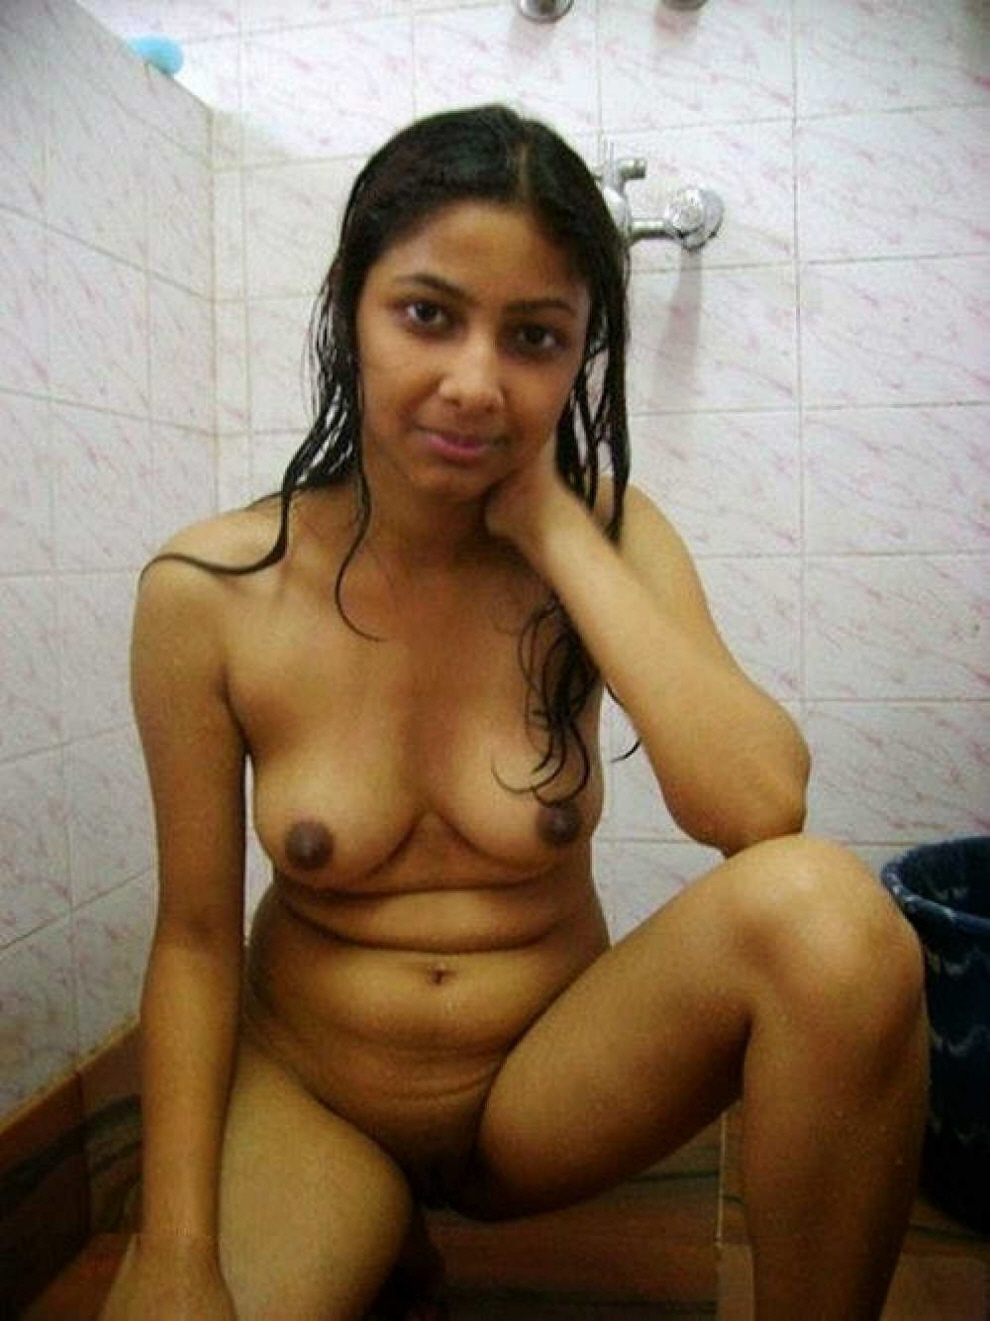 Are not Indian porn pics collection interesting